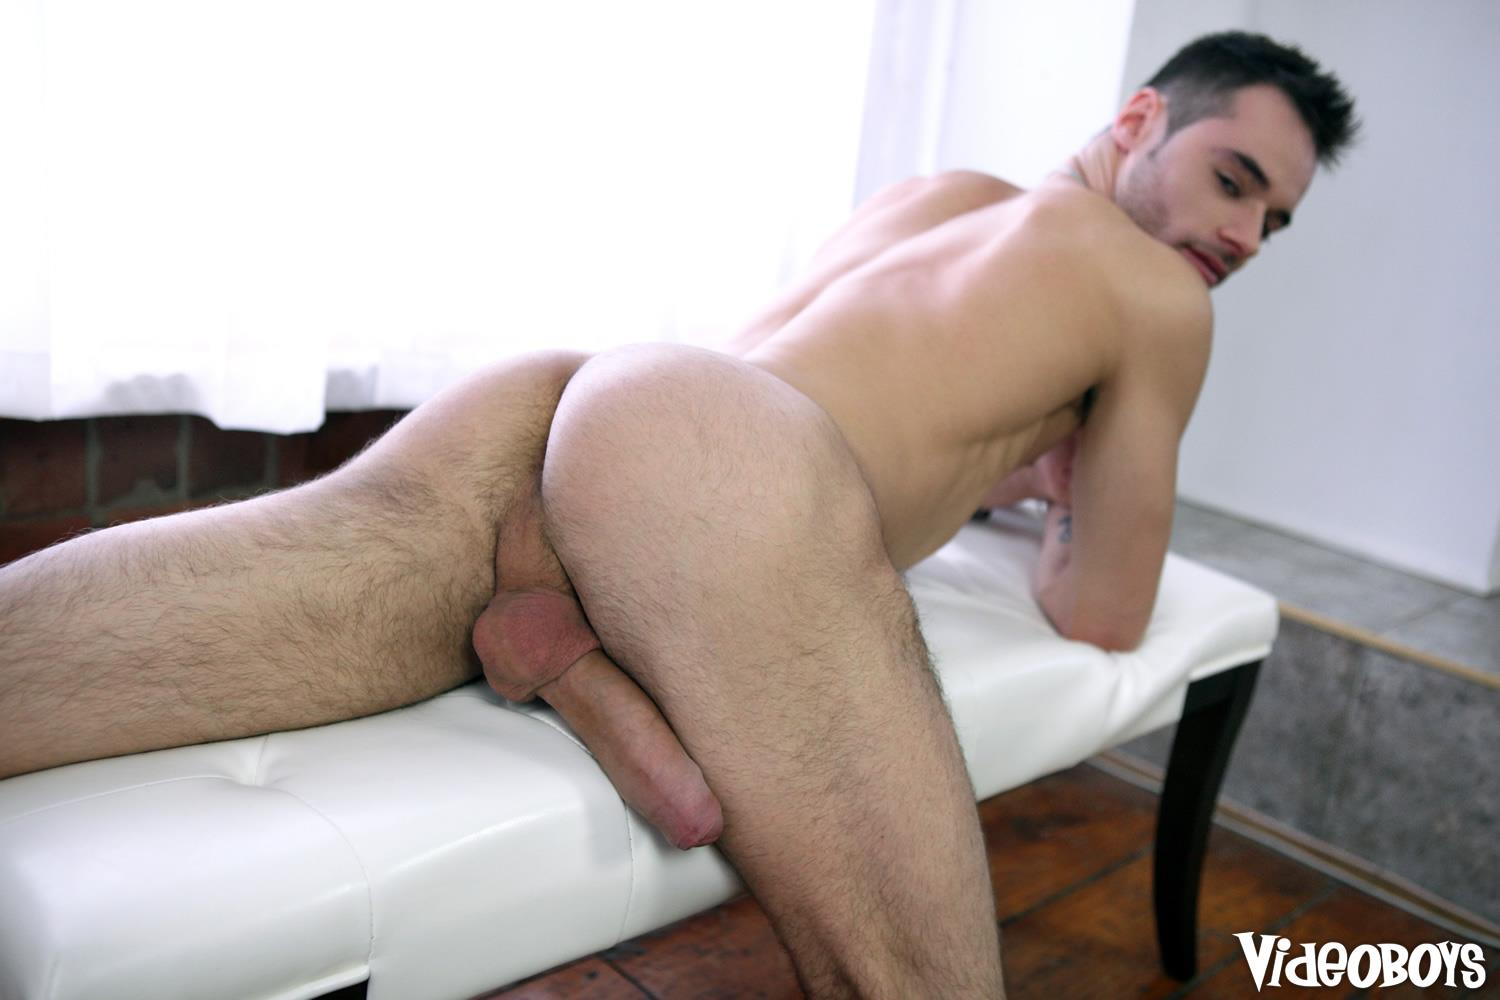 VideoBoyz-Marco-Gagnon-Huge-Uncut-Cock-In-A-Fleshlight-Amateur-Gay-Porn-11 Horny Young Guy Busts Open A Fleshlight With His Big Uncut Cock